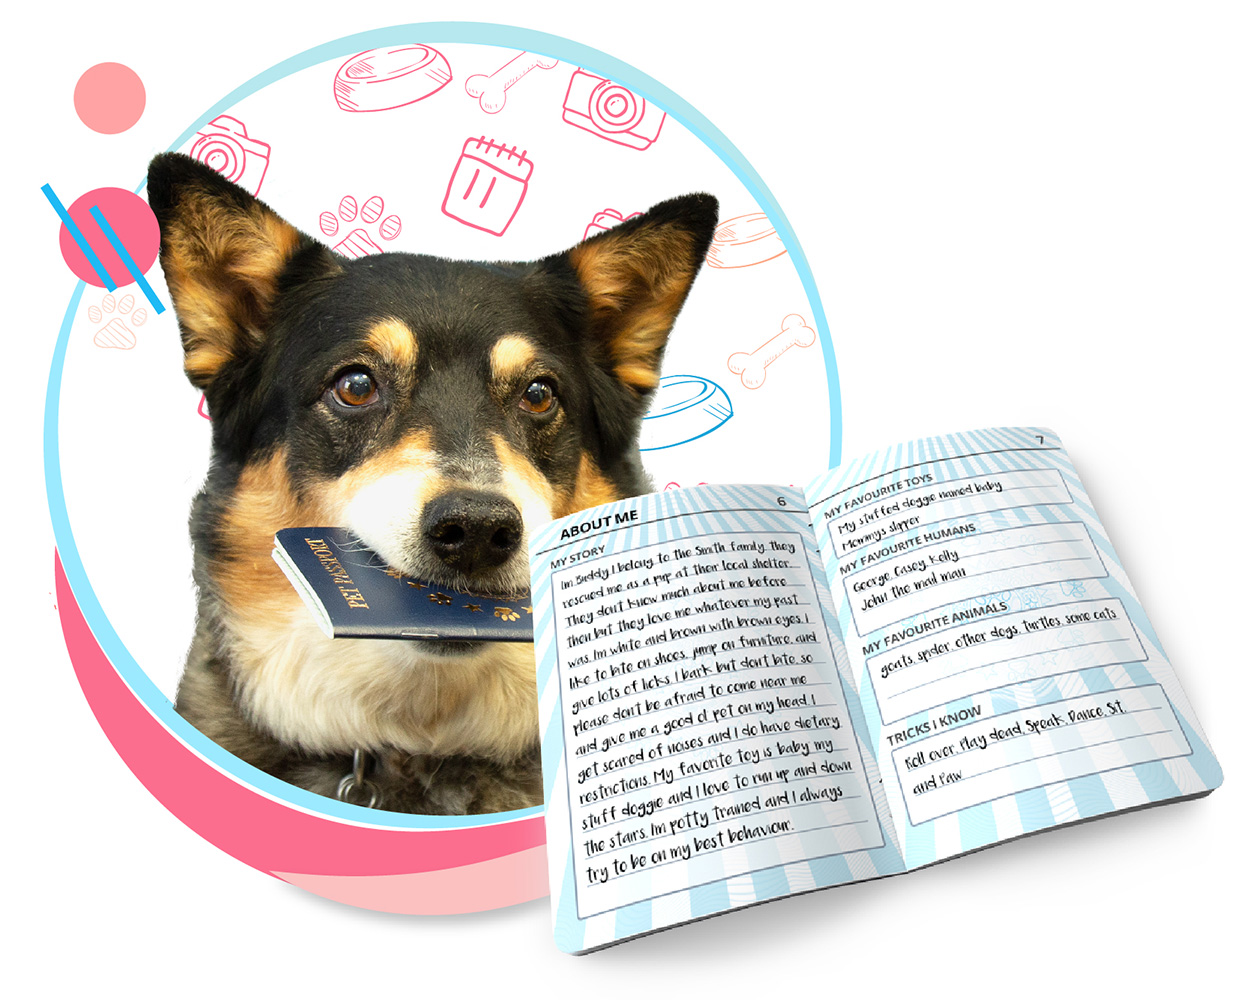 A dog with their pet passport in their mouth. A pet passport is hovering in front, opened the the About Me section. This section features the pet's story, favourite toys, people, animals, and tricks they know.